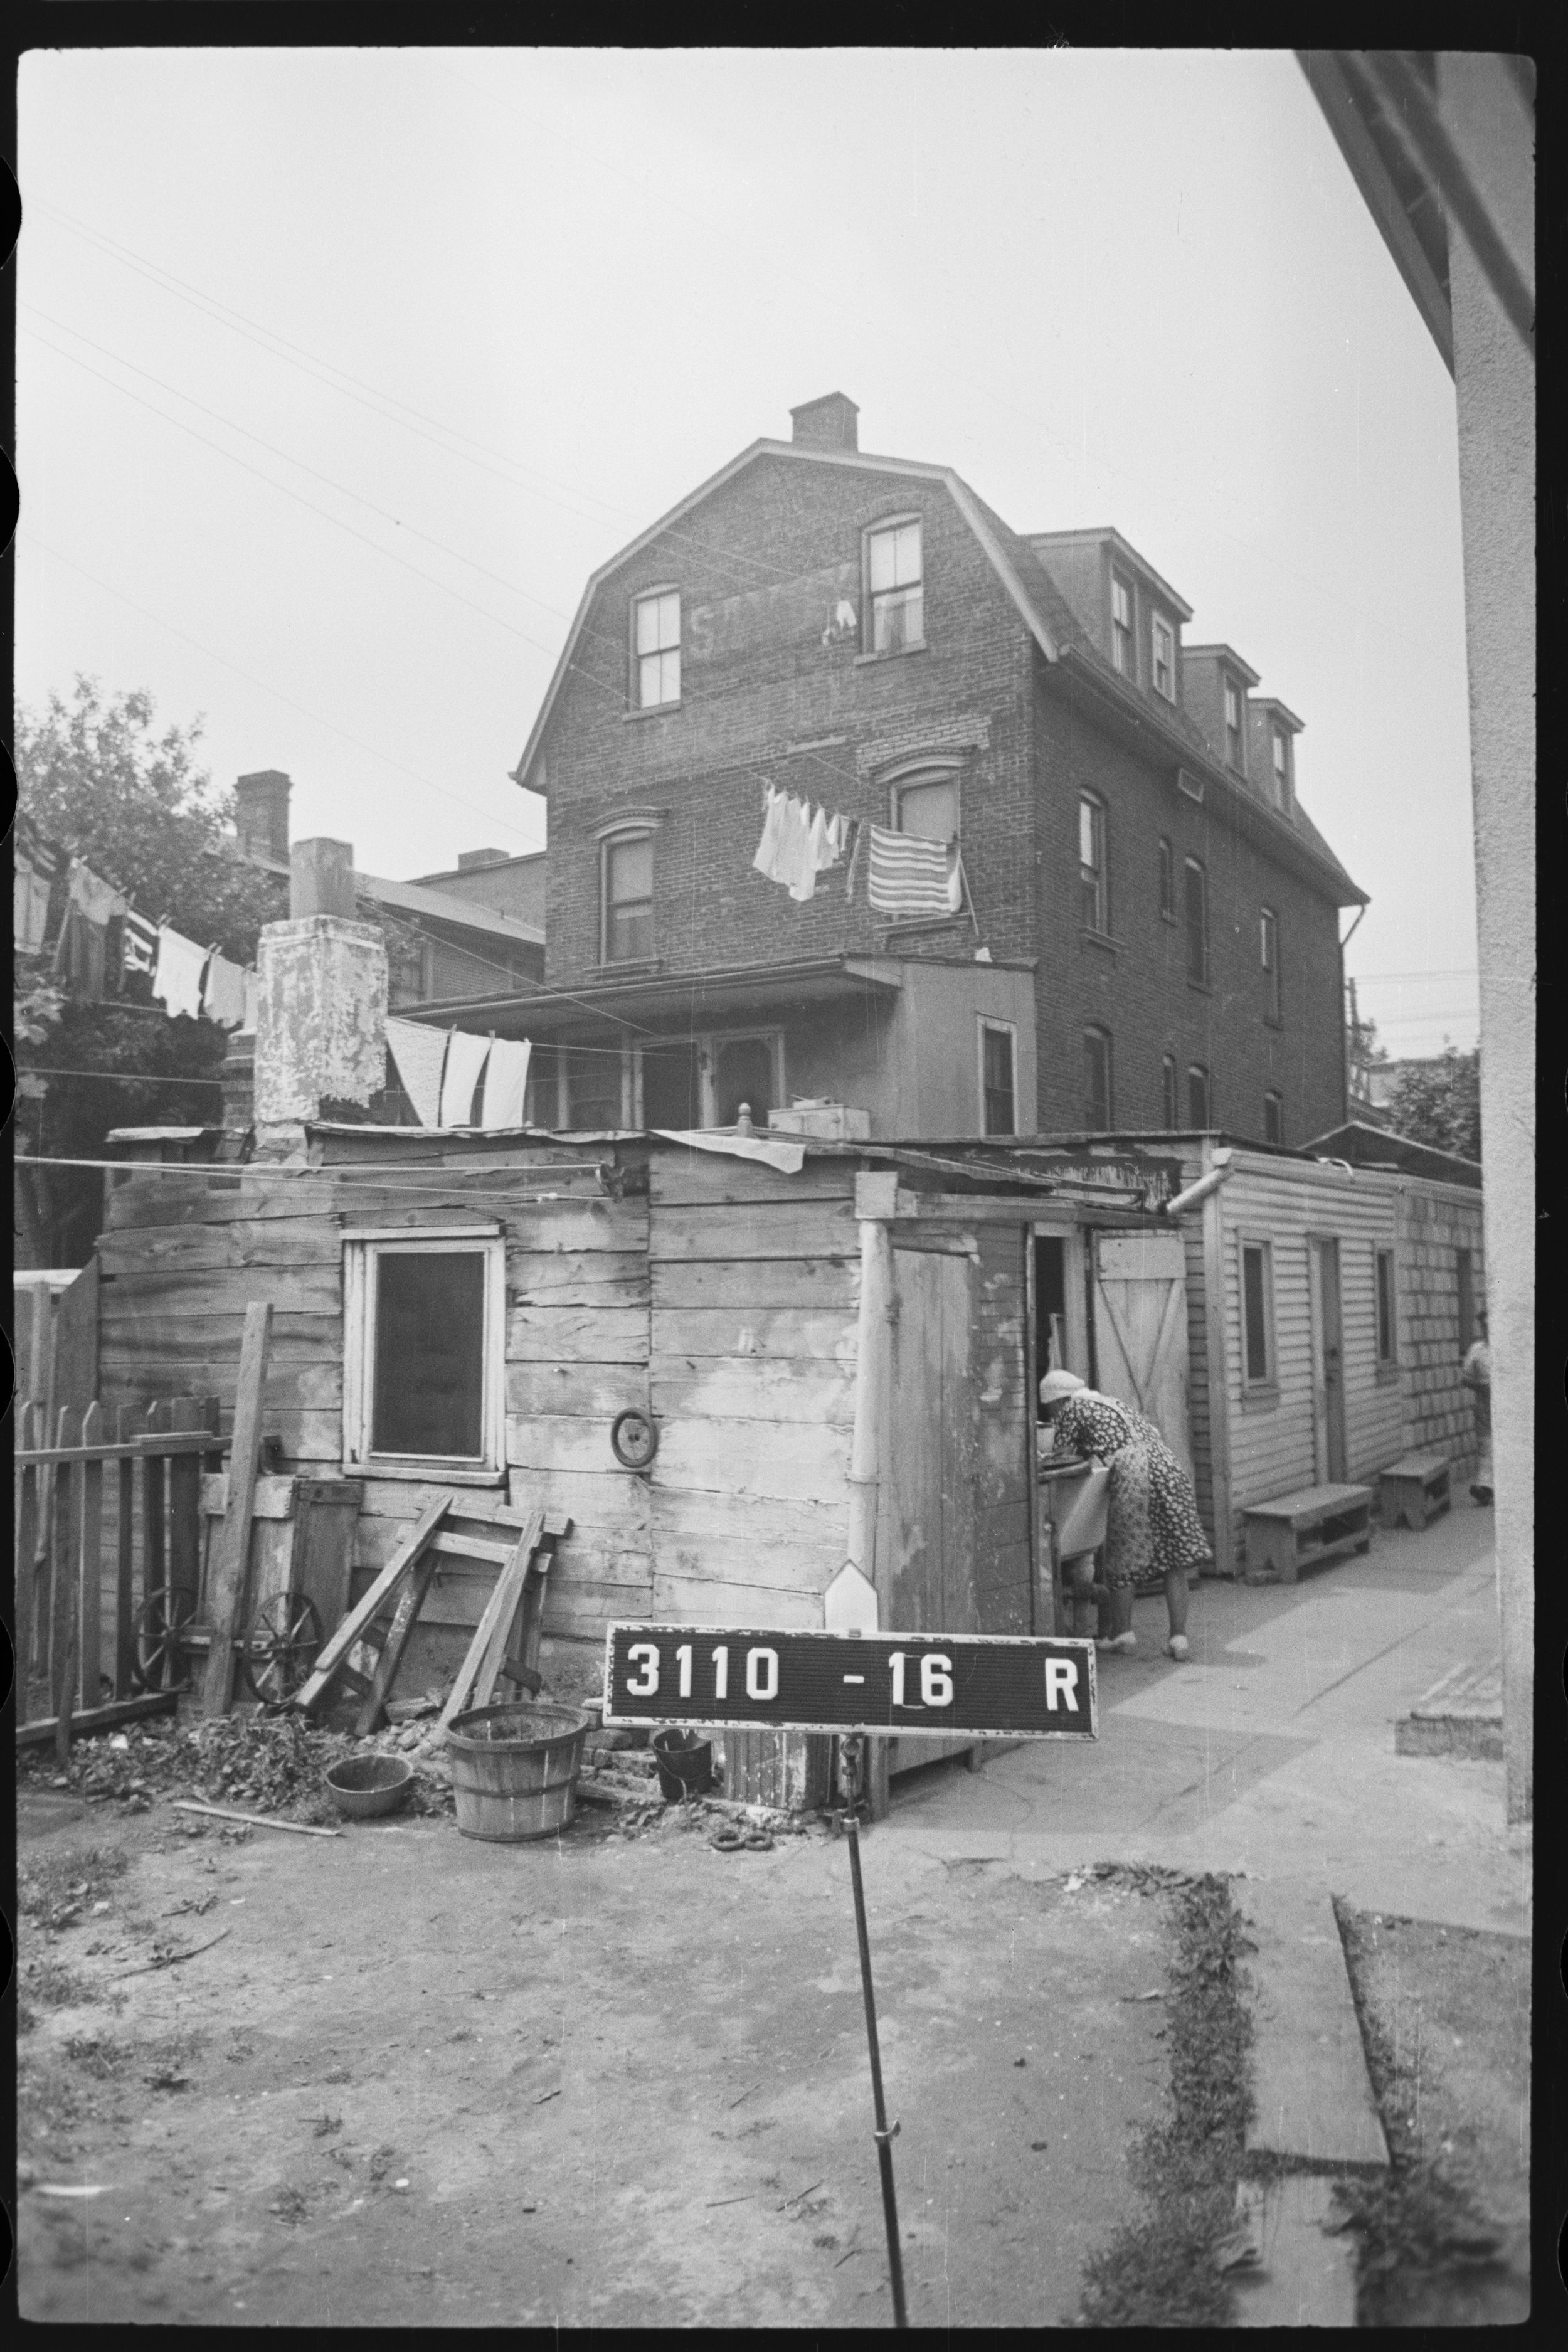 Staten Island, 257 Sand Lane, Block 3110, Lot 16. Department of Finance Collection, NYC Municipal Archives.